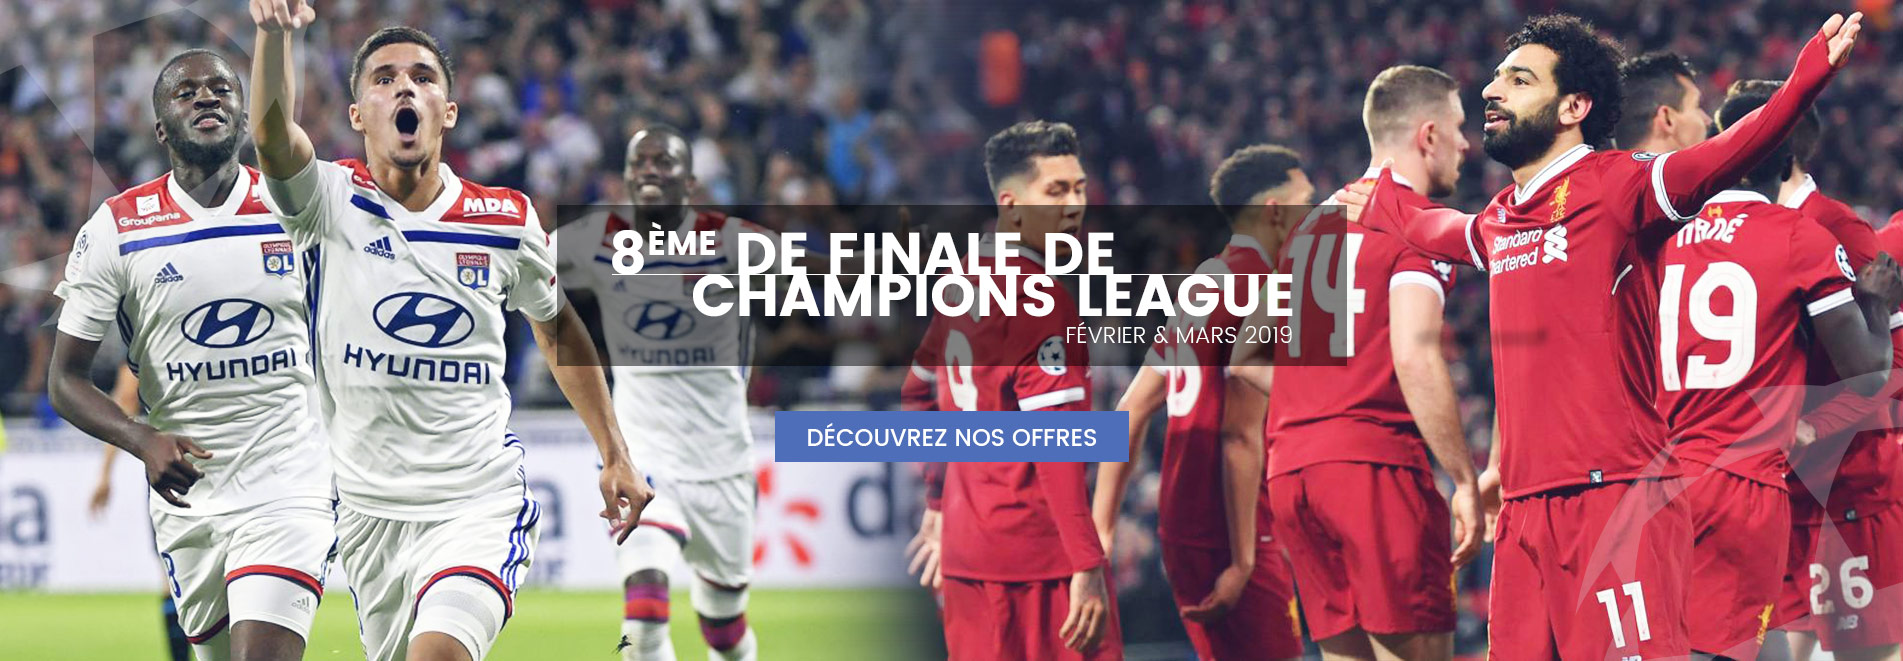 8ème Finale Champions League - Voyages Sports